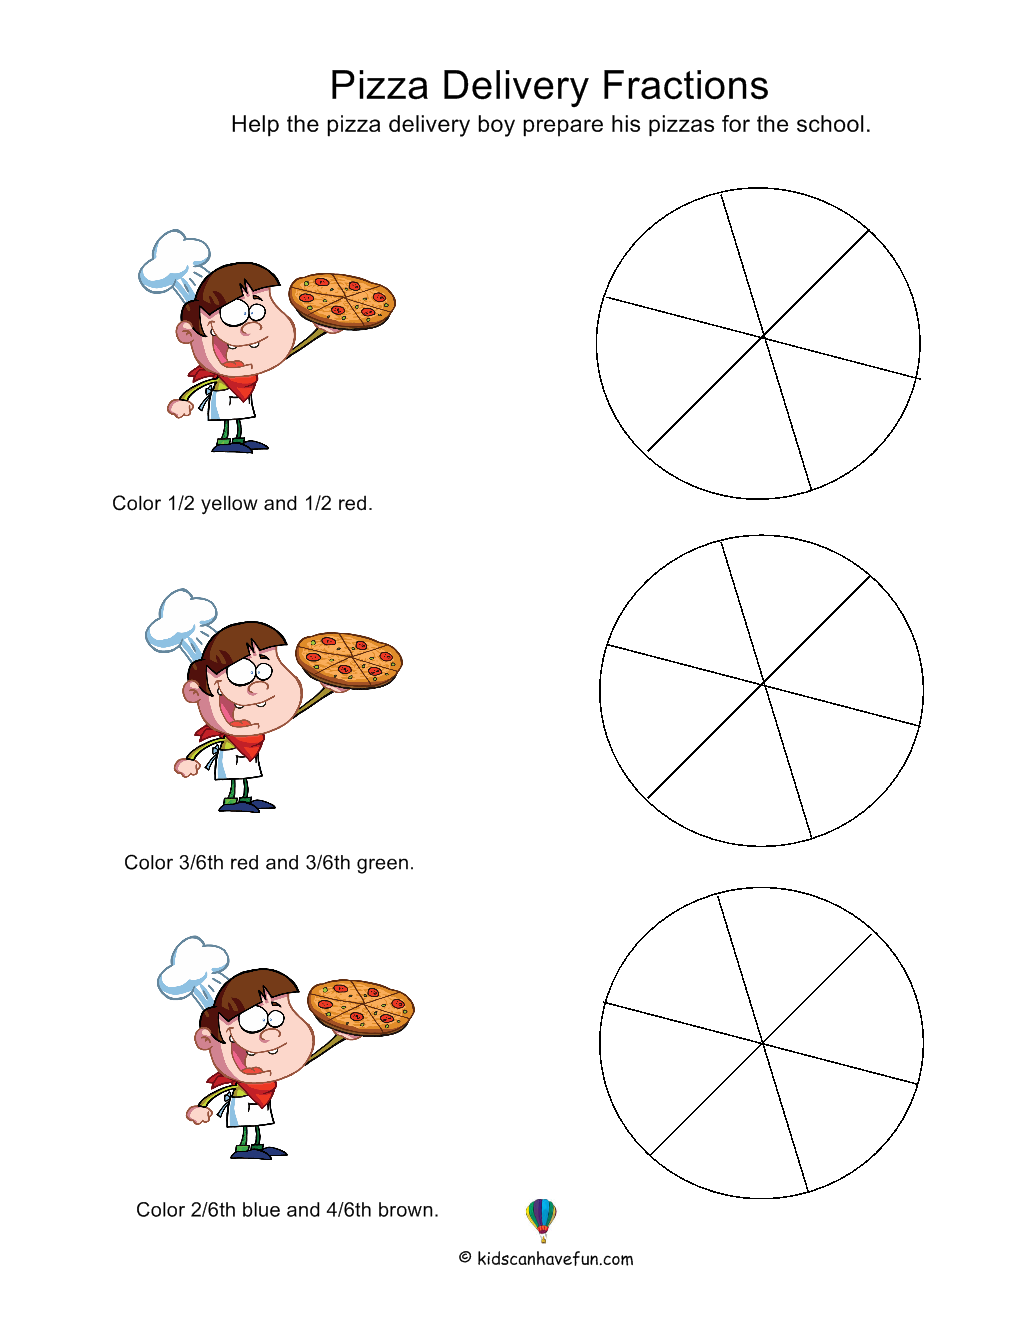 Pizza Delivery Fractions Http Www Kidscanhavefun Com Math Activities Htm Math Fractions Worksheets Kids Math Worksheets Fractions Math Worksheets